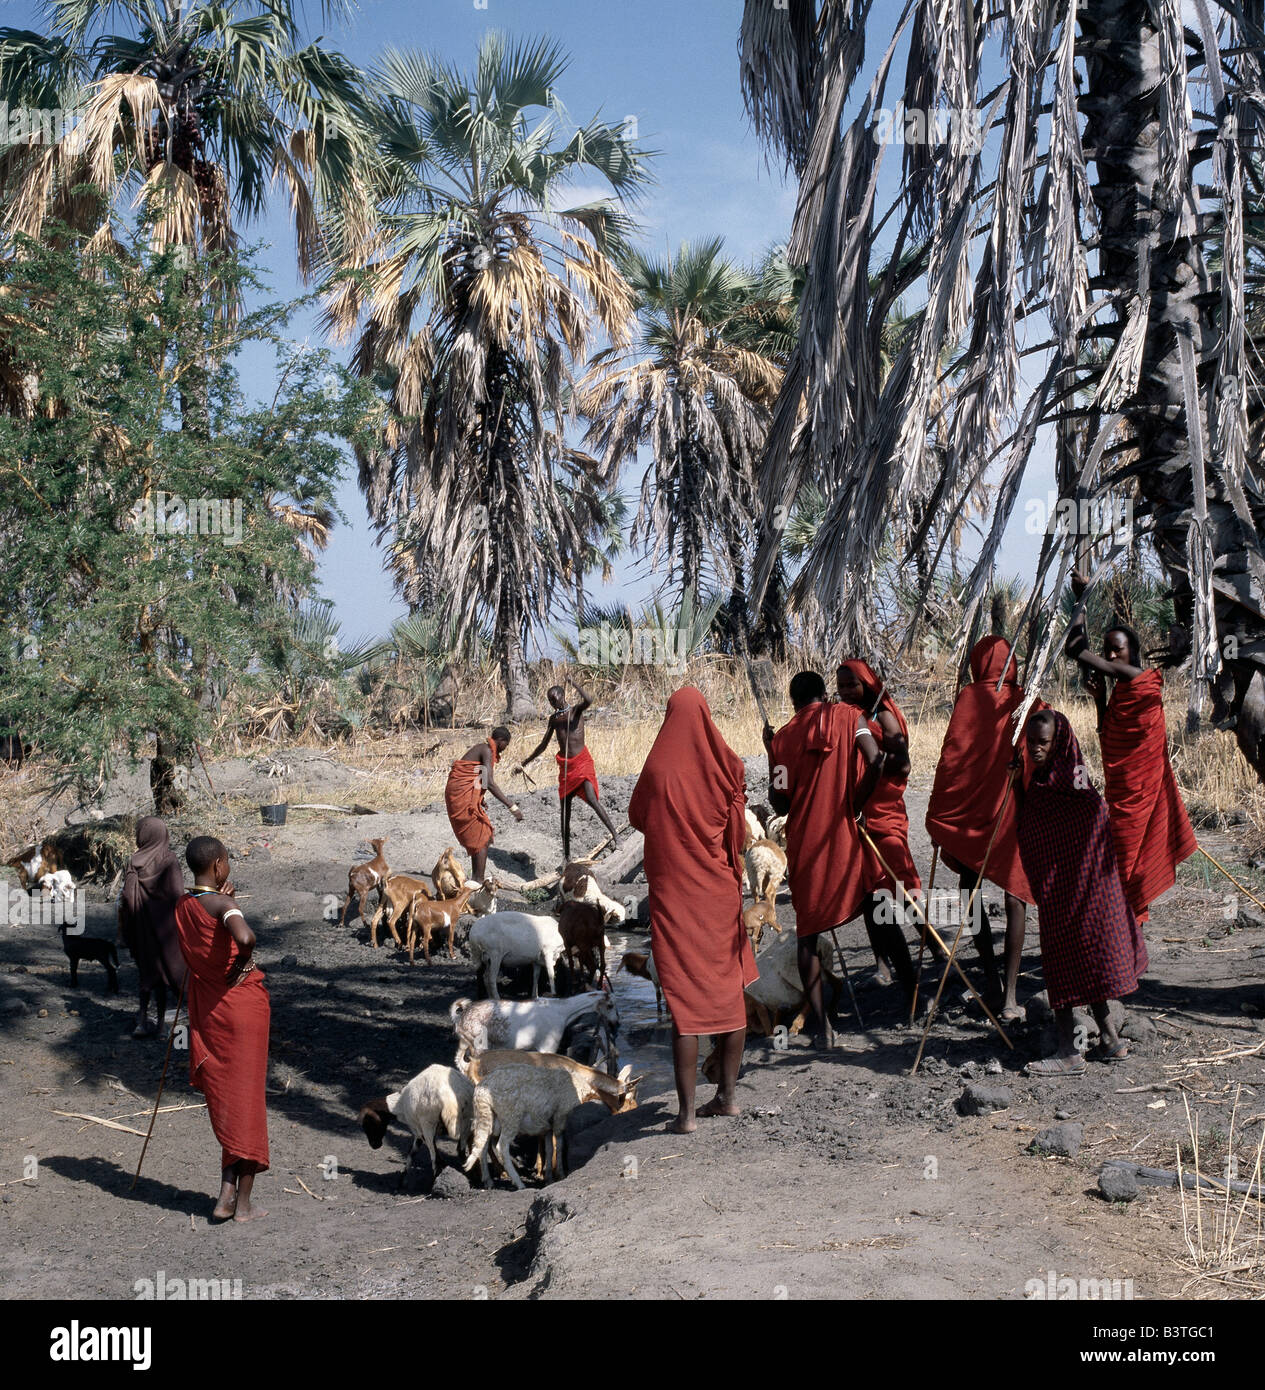 Tanzania, Northern Tanzania, Manyara. A group of red-clad Datoga people gather around water wells situated beside - Stock Image